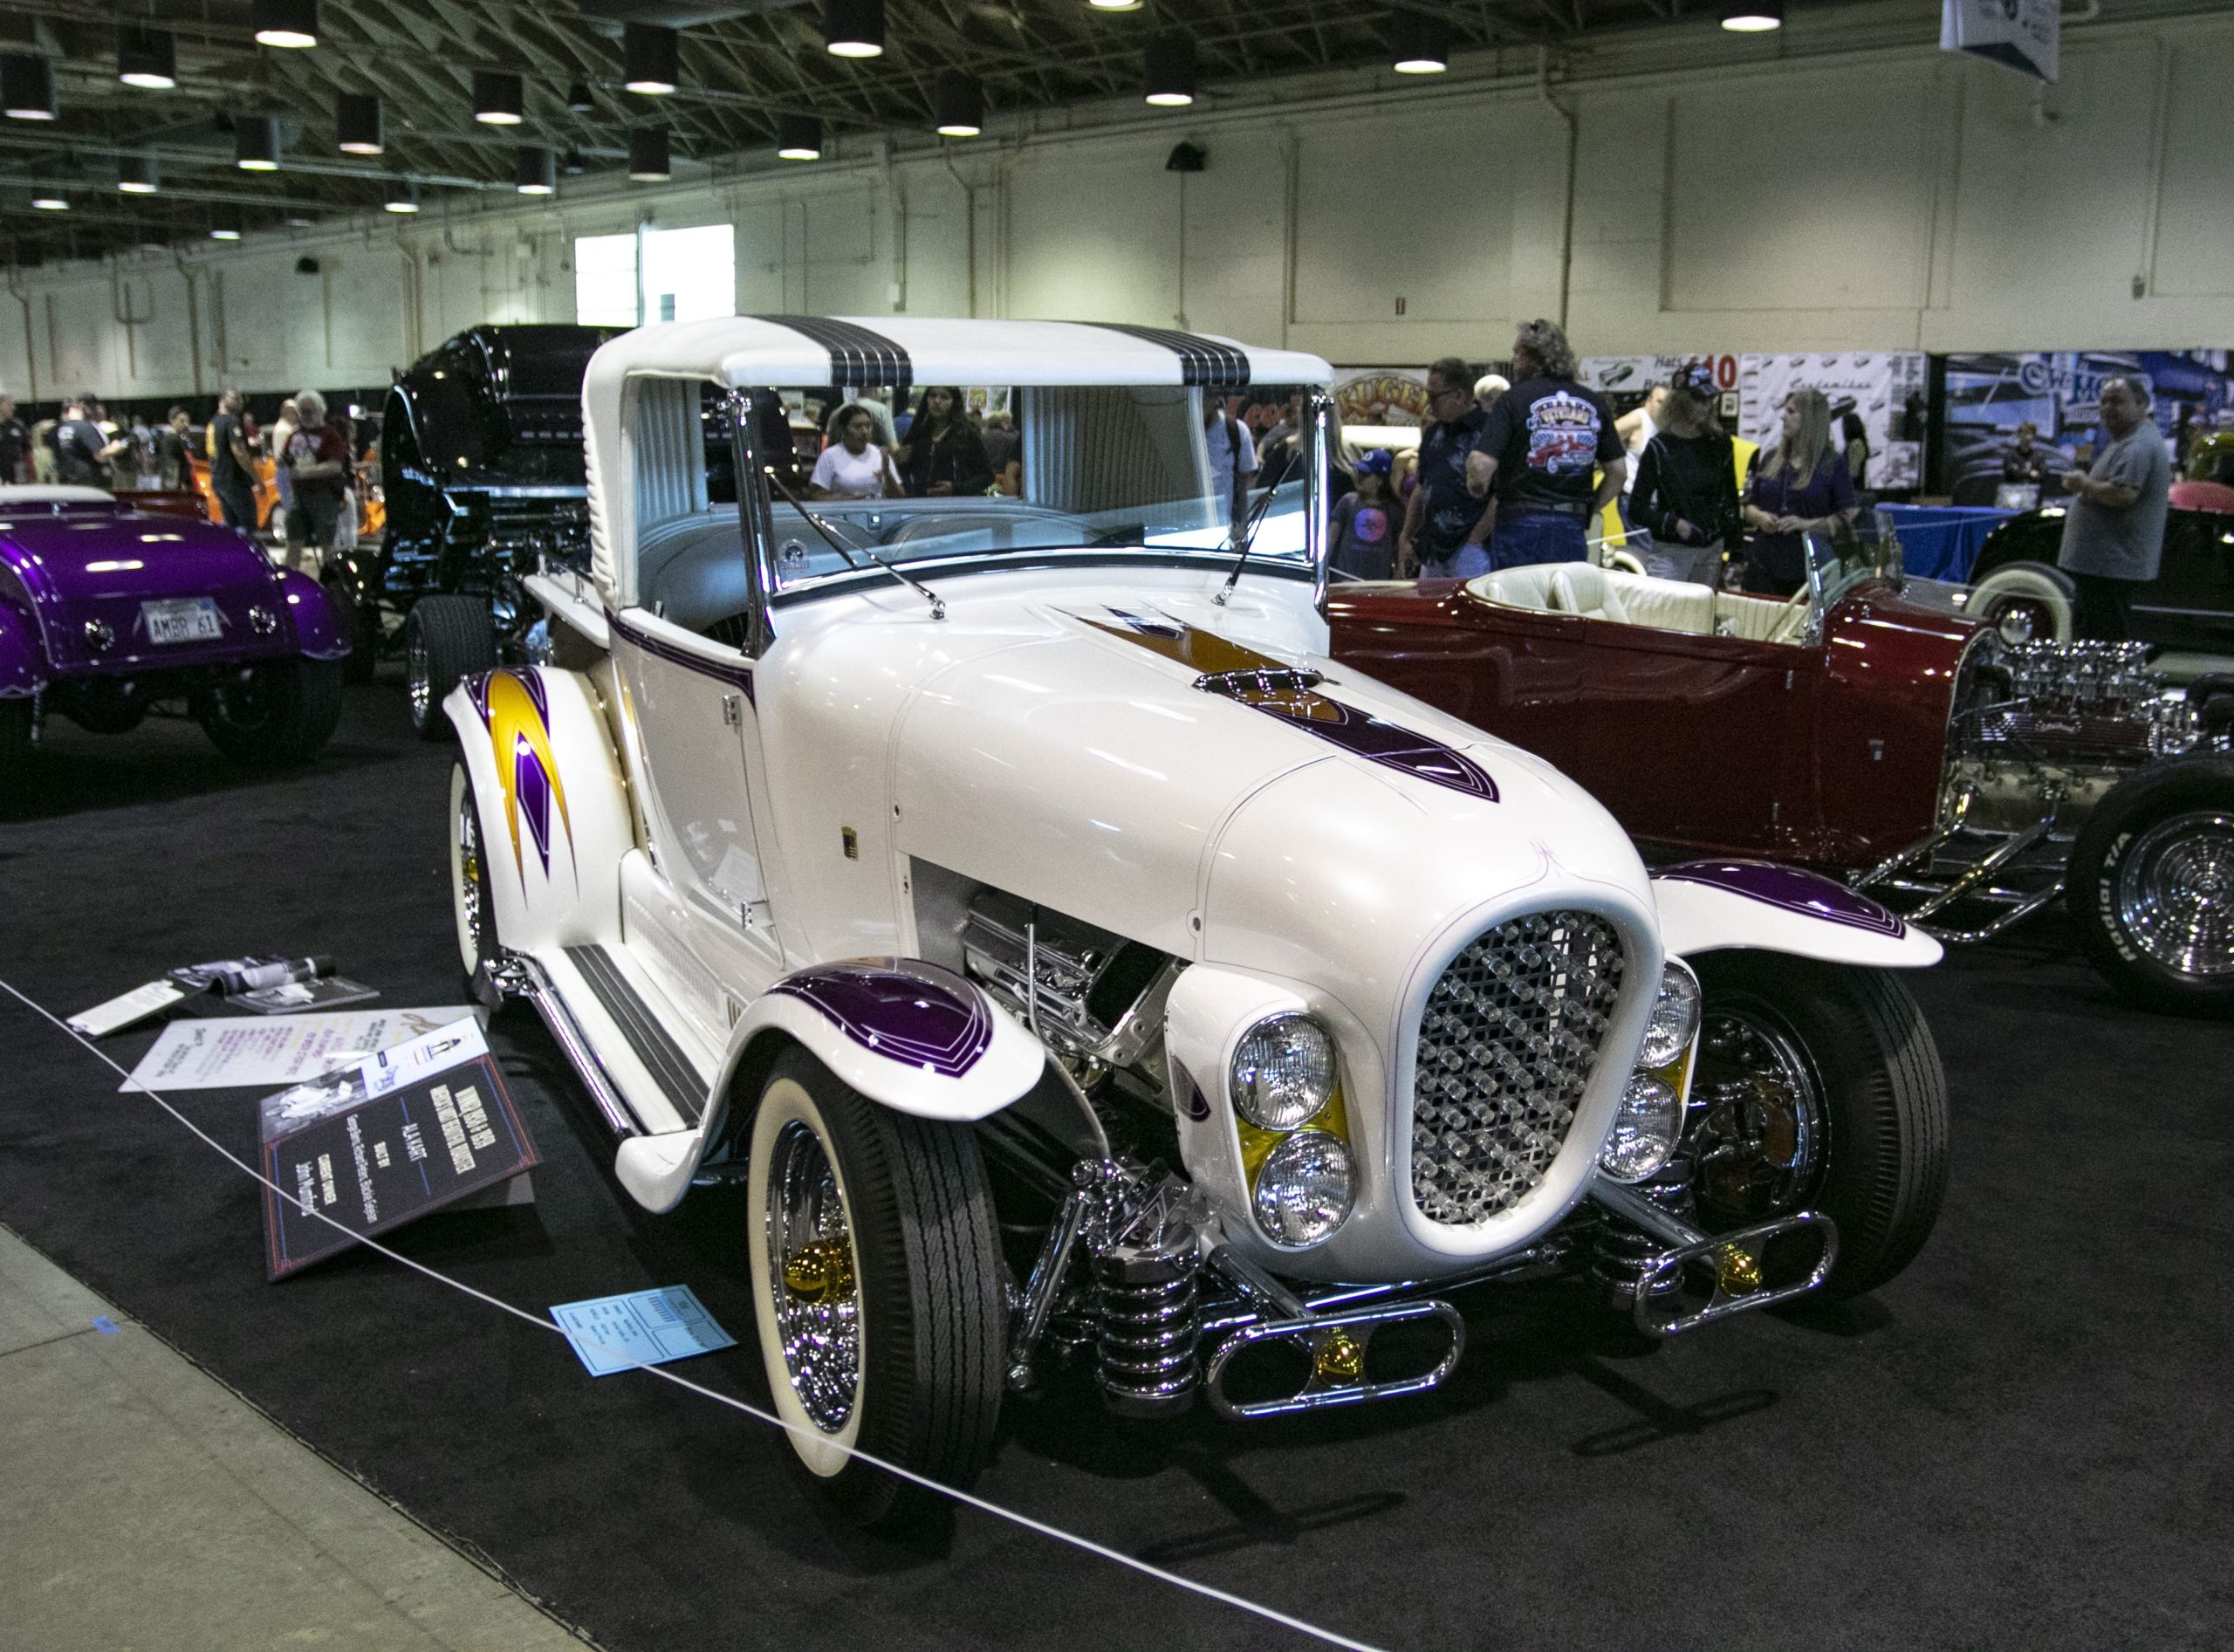 This 1929 Ford Model A, nicknamed Ala Kart, won the Bruce Meyer Hot Rod Preservation Award this weekend at the 70th anniversary